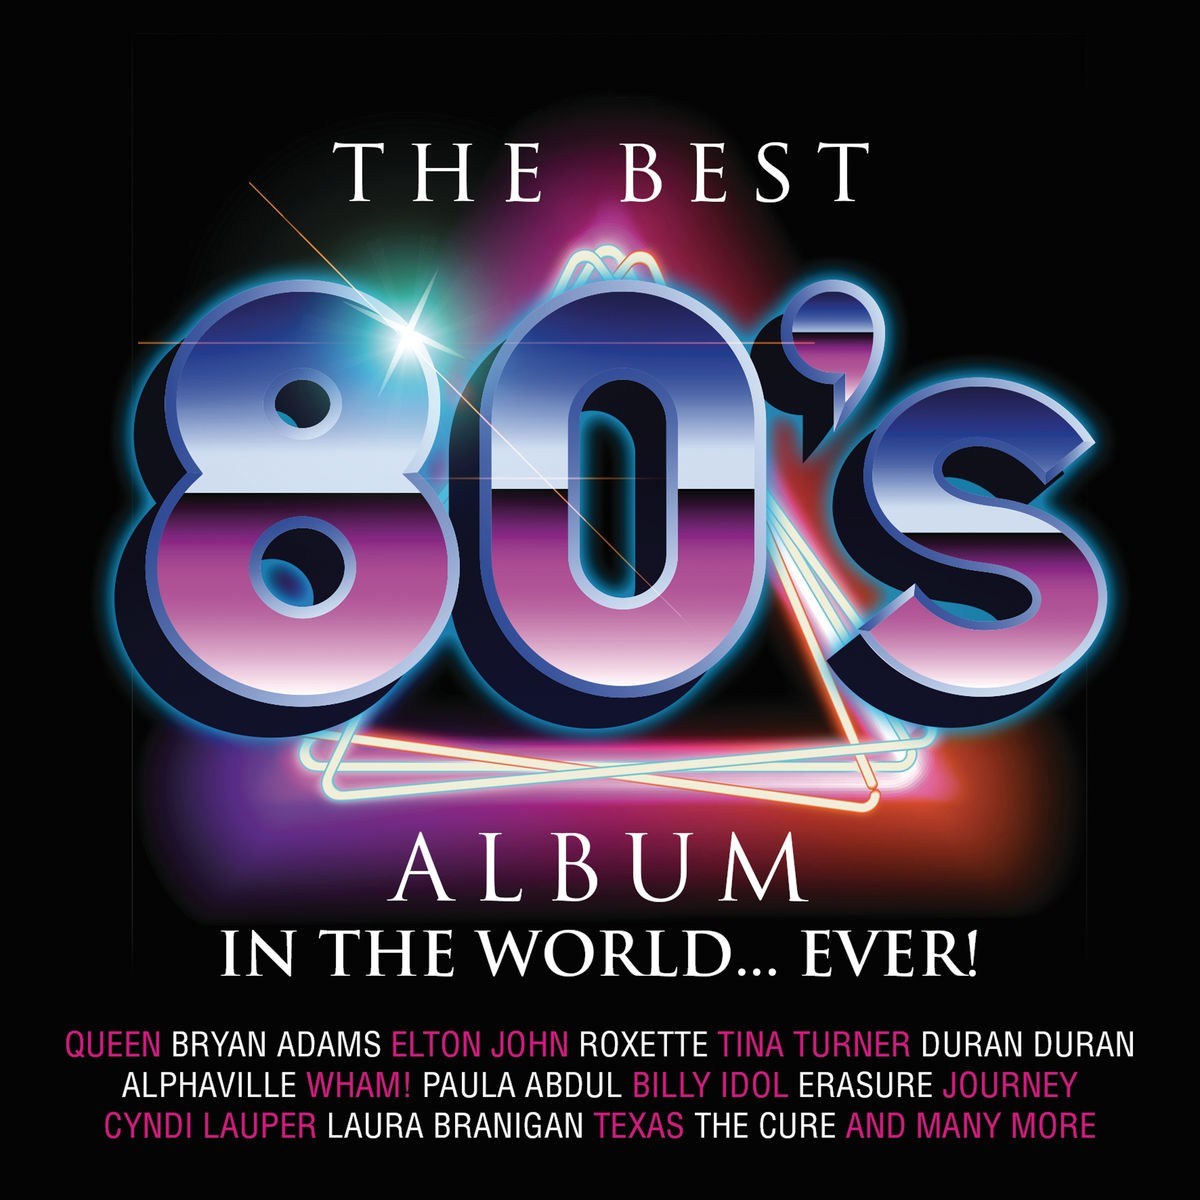 The Best 80's Album In The World...Ever CD - DARCD 3162